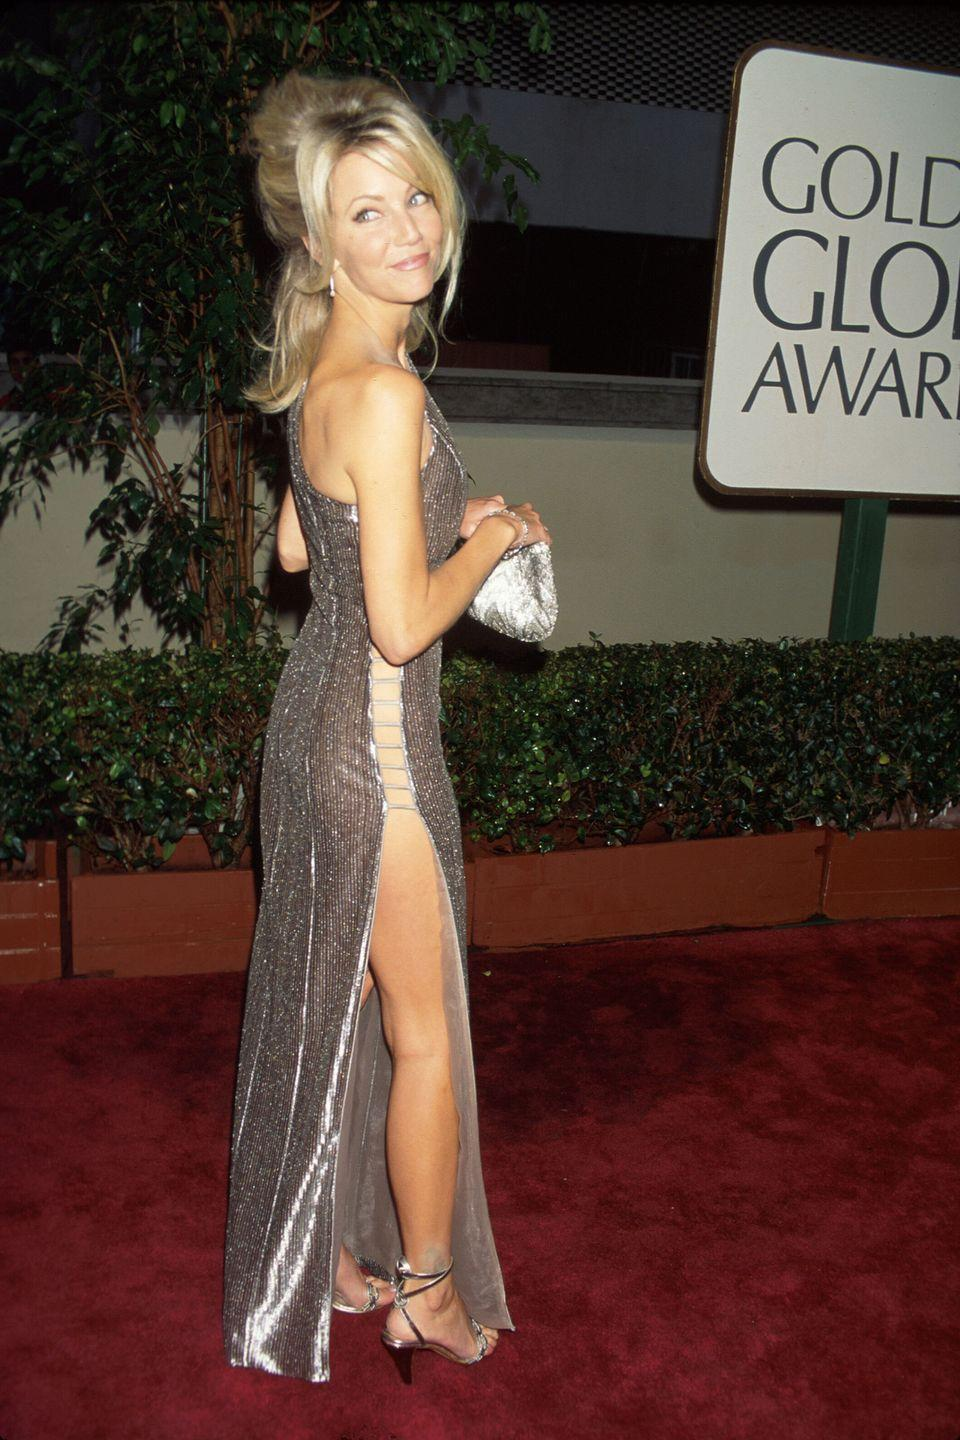 <p>The blonde bombshell was always known for her sex appeal, so it's no surprise she rocked this risqué side-split gown in 1996.</p>